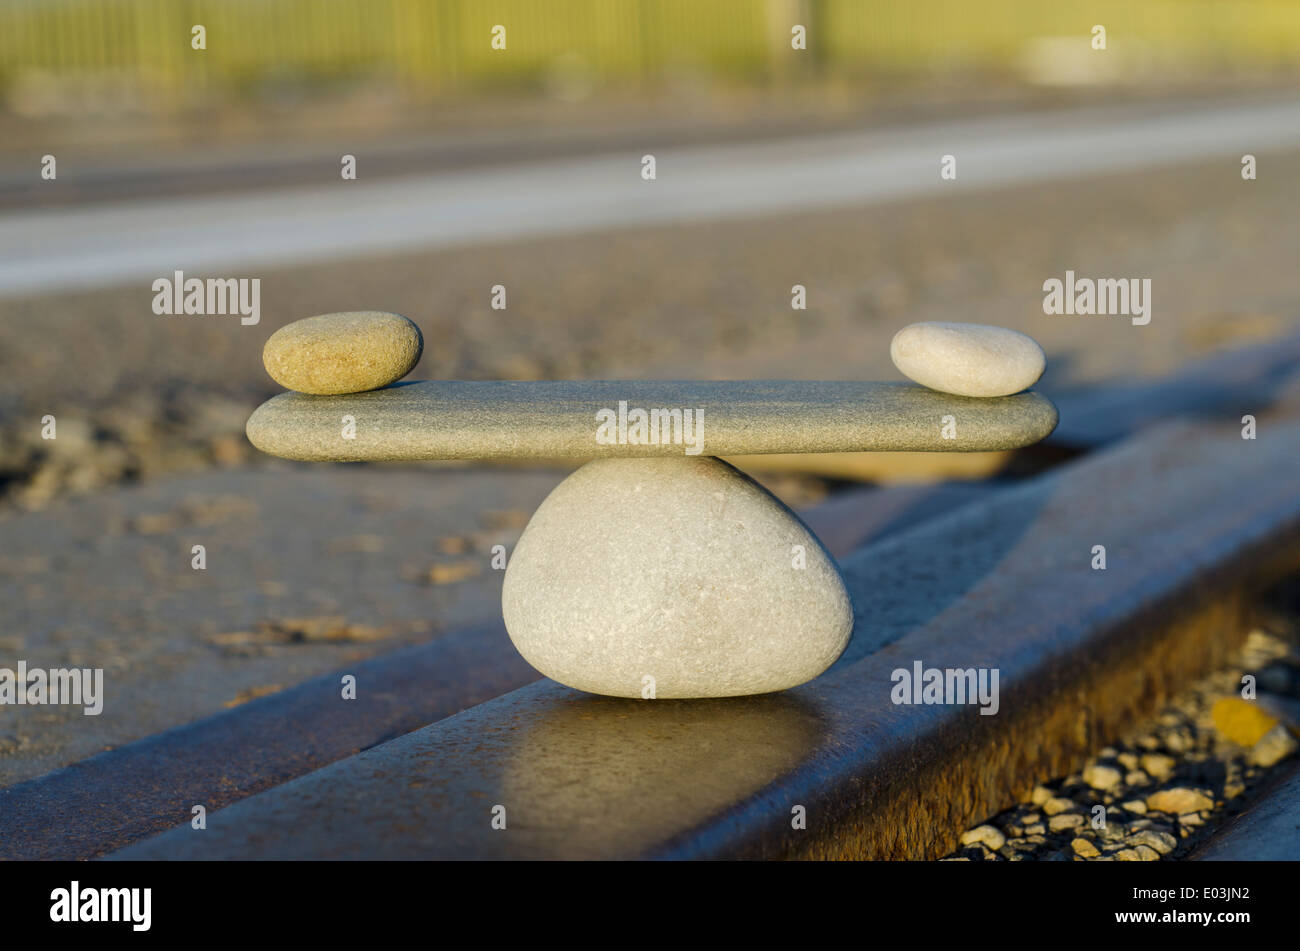 Symbol Scales is made of stones of various shapes - Stock Image